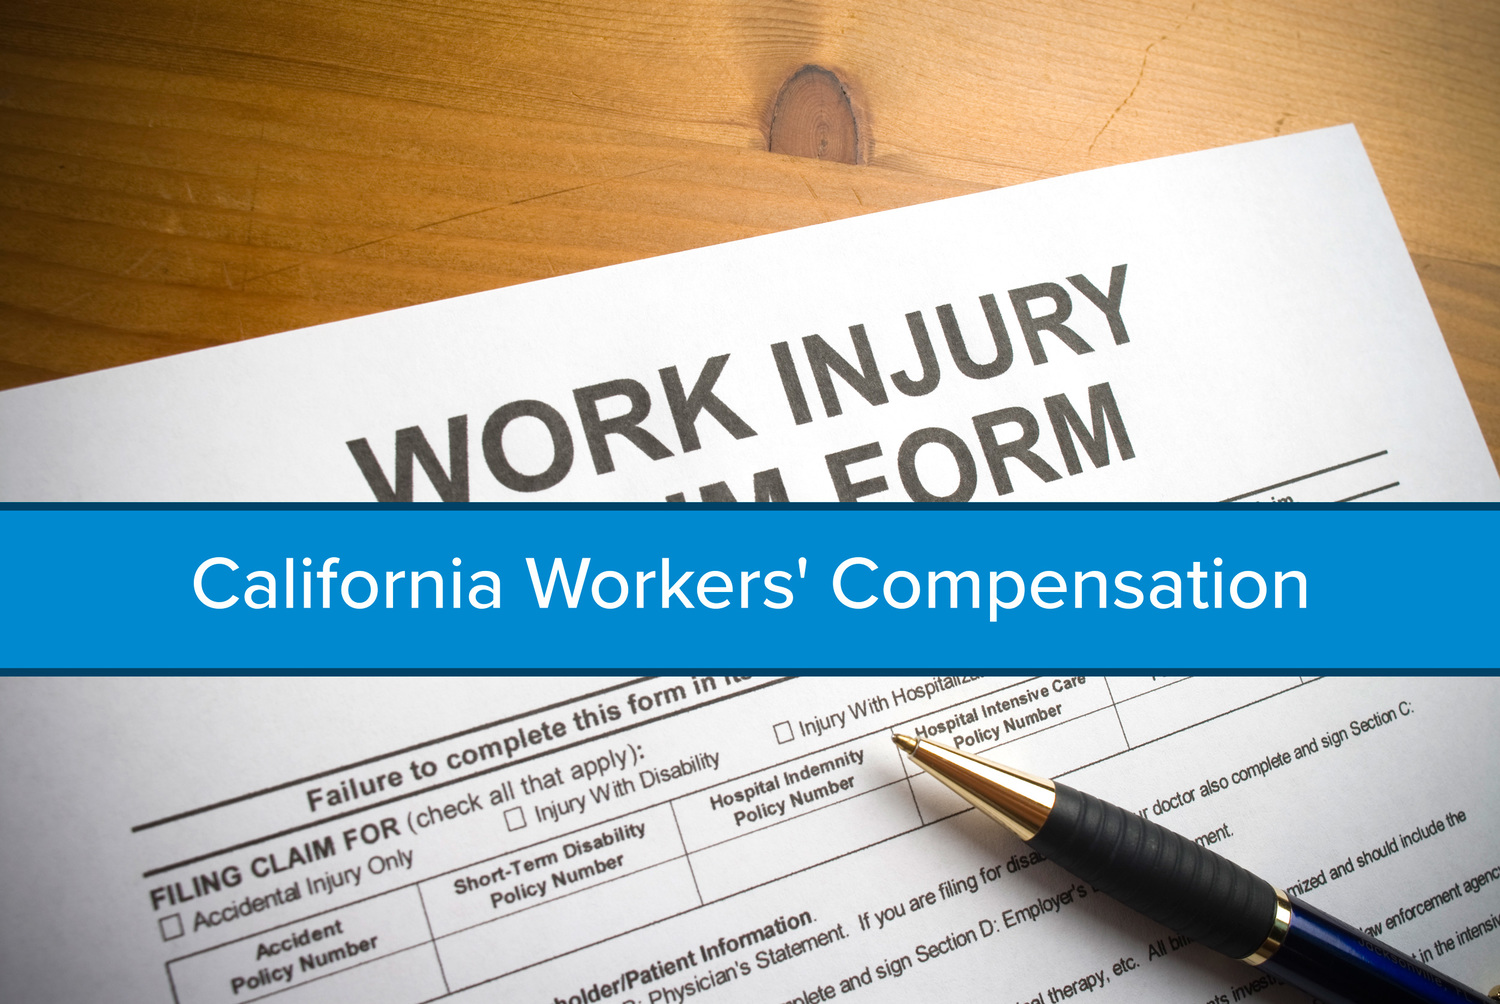 research paper and worker compensation Whitepaper / workers' compensation insurance rating bureau, california workers' compensation risk assessment of california earthquake view this.